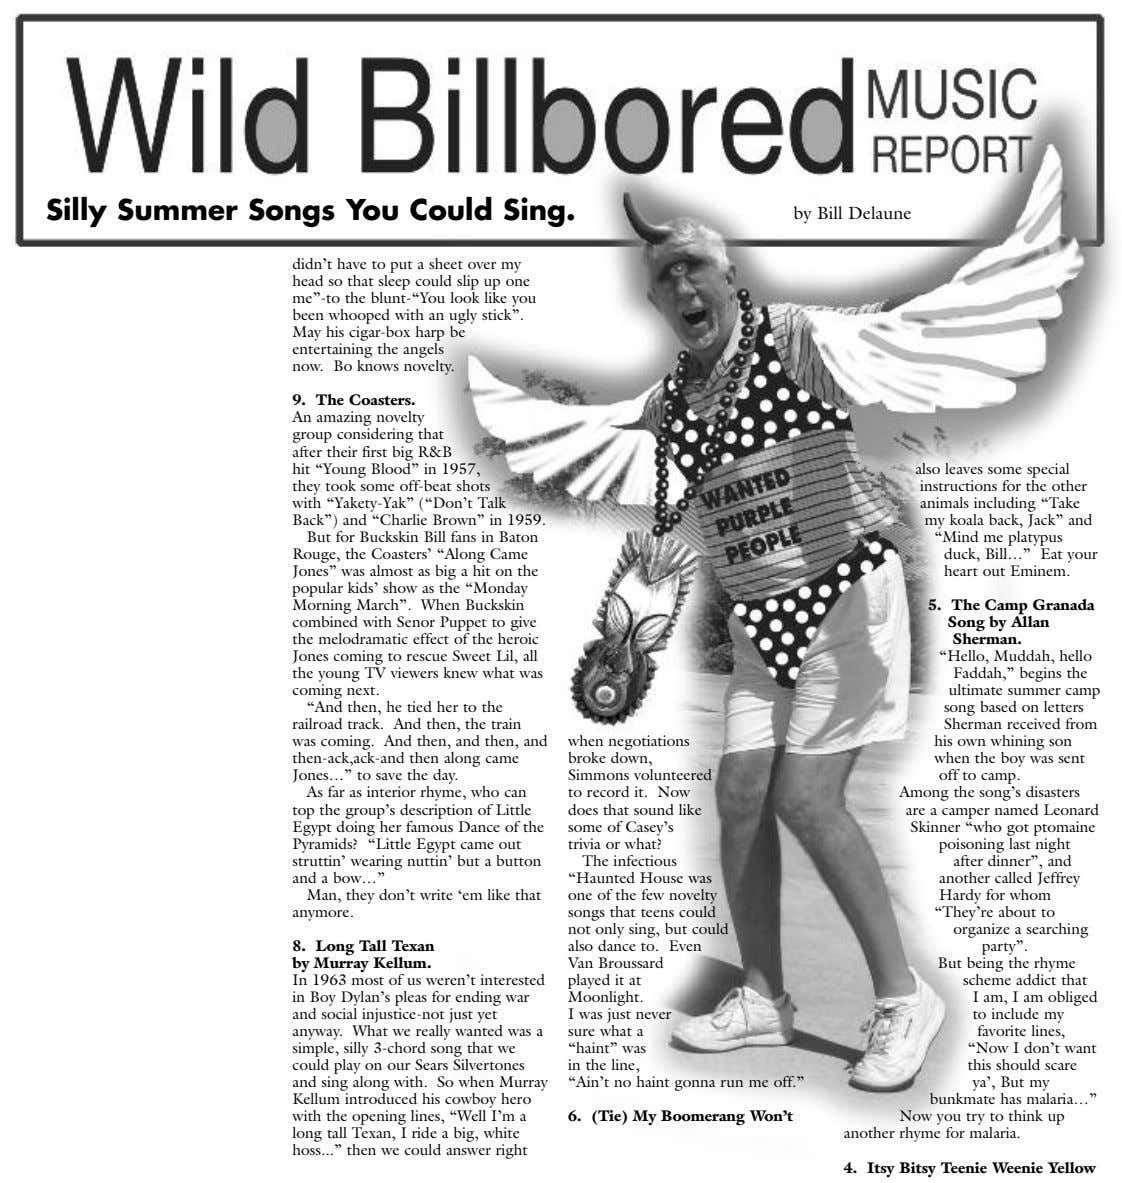 Silly Summer Songs You Could Sing. by Bill Delaune didn't have to put a sheet